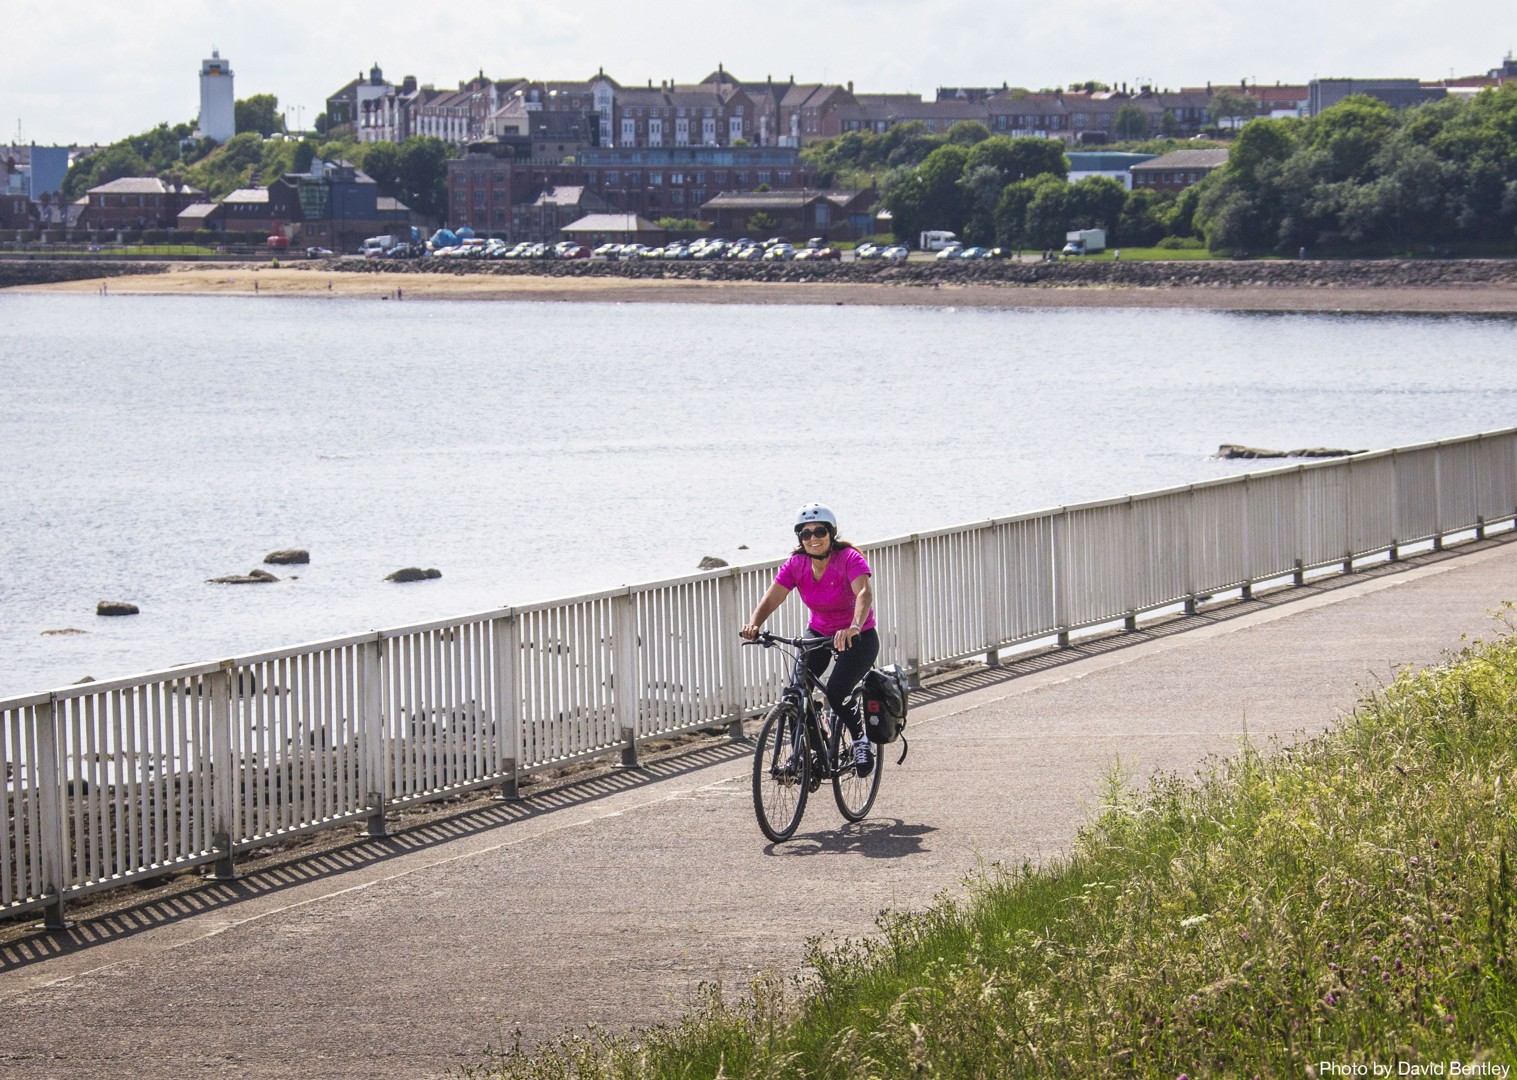 Self-Guided-Leisure-Cycling-Holiday-Hadrians-Cycleway-UK-cycle-Tynemouth.jpg - UK - Hadrian's Cycleway - 6 Days Cycling - Self-Guided Leisure Cycling Holiday - Leisure Cycling